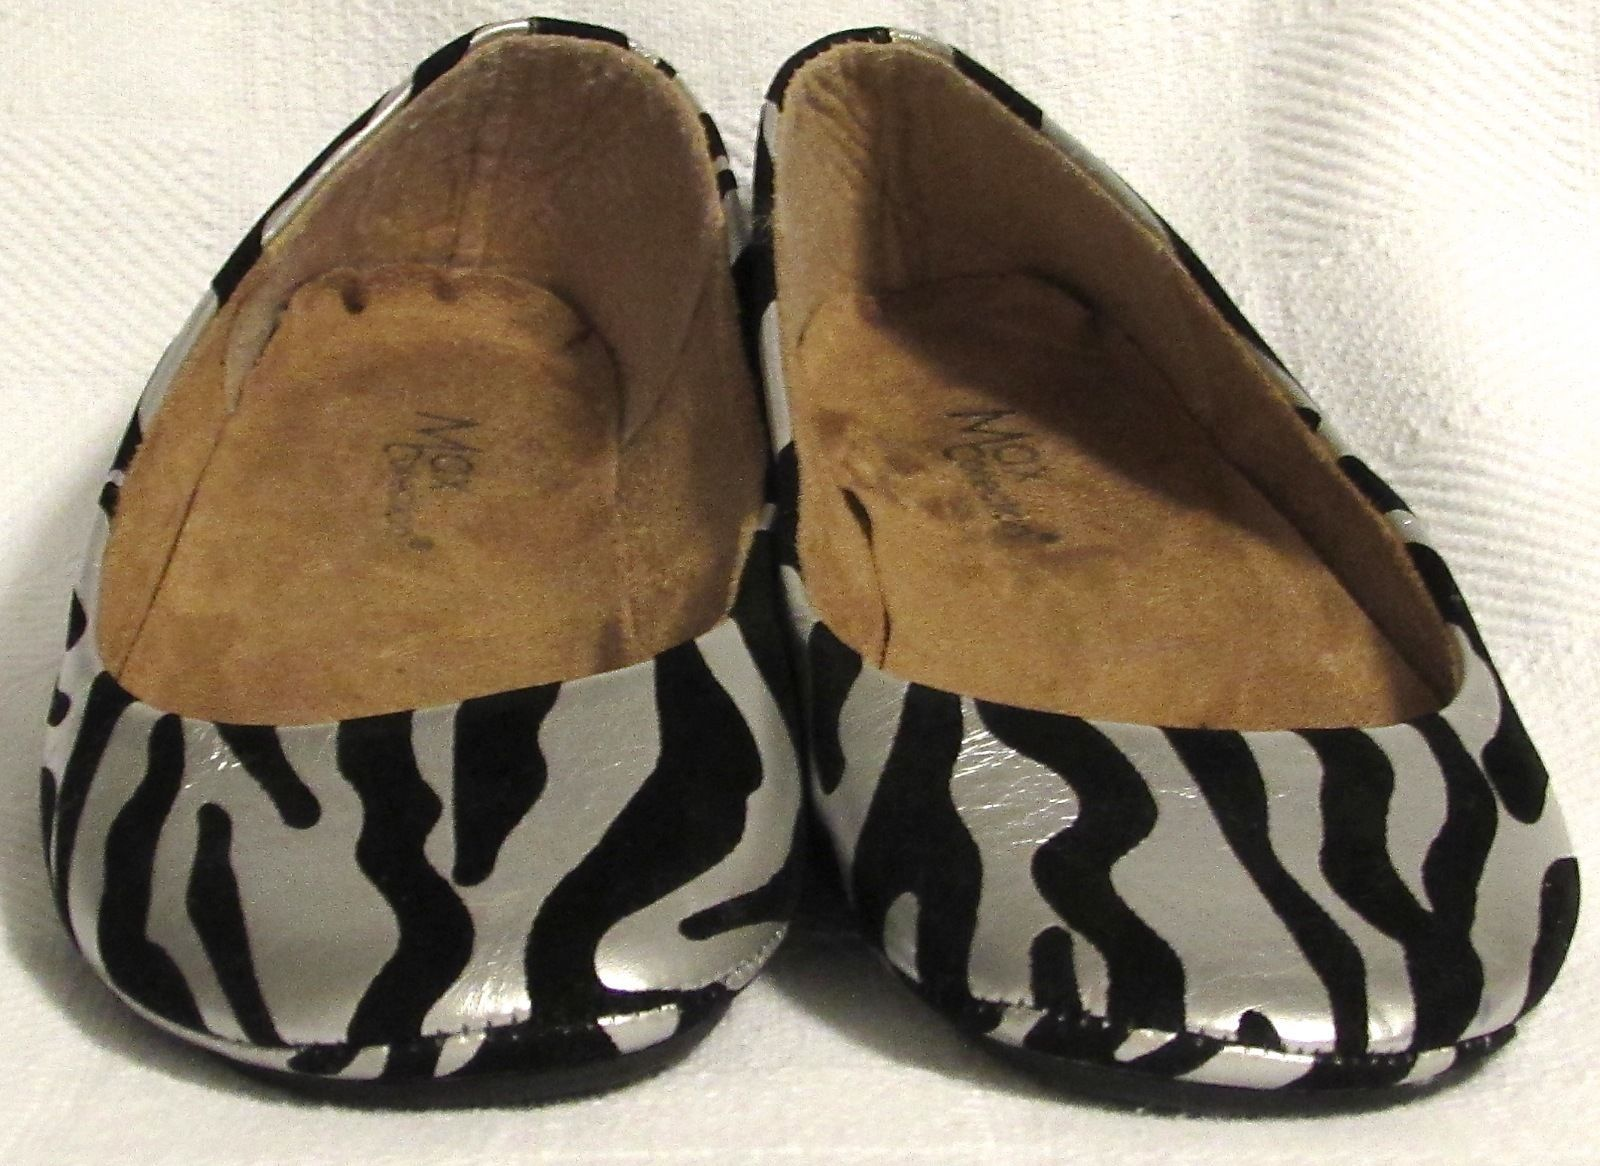 Max Collection Animal Print Multi-Color (Silver/Black) Ballet Flats Size: 8.5 M